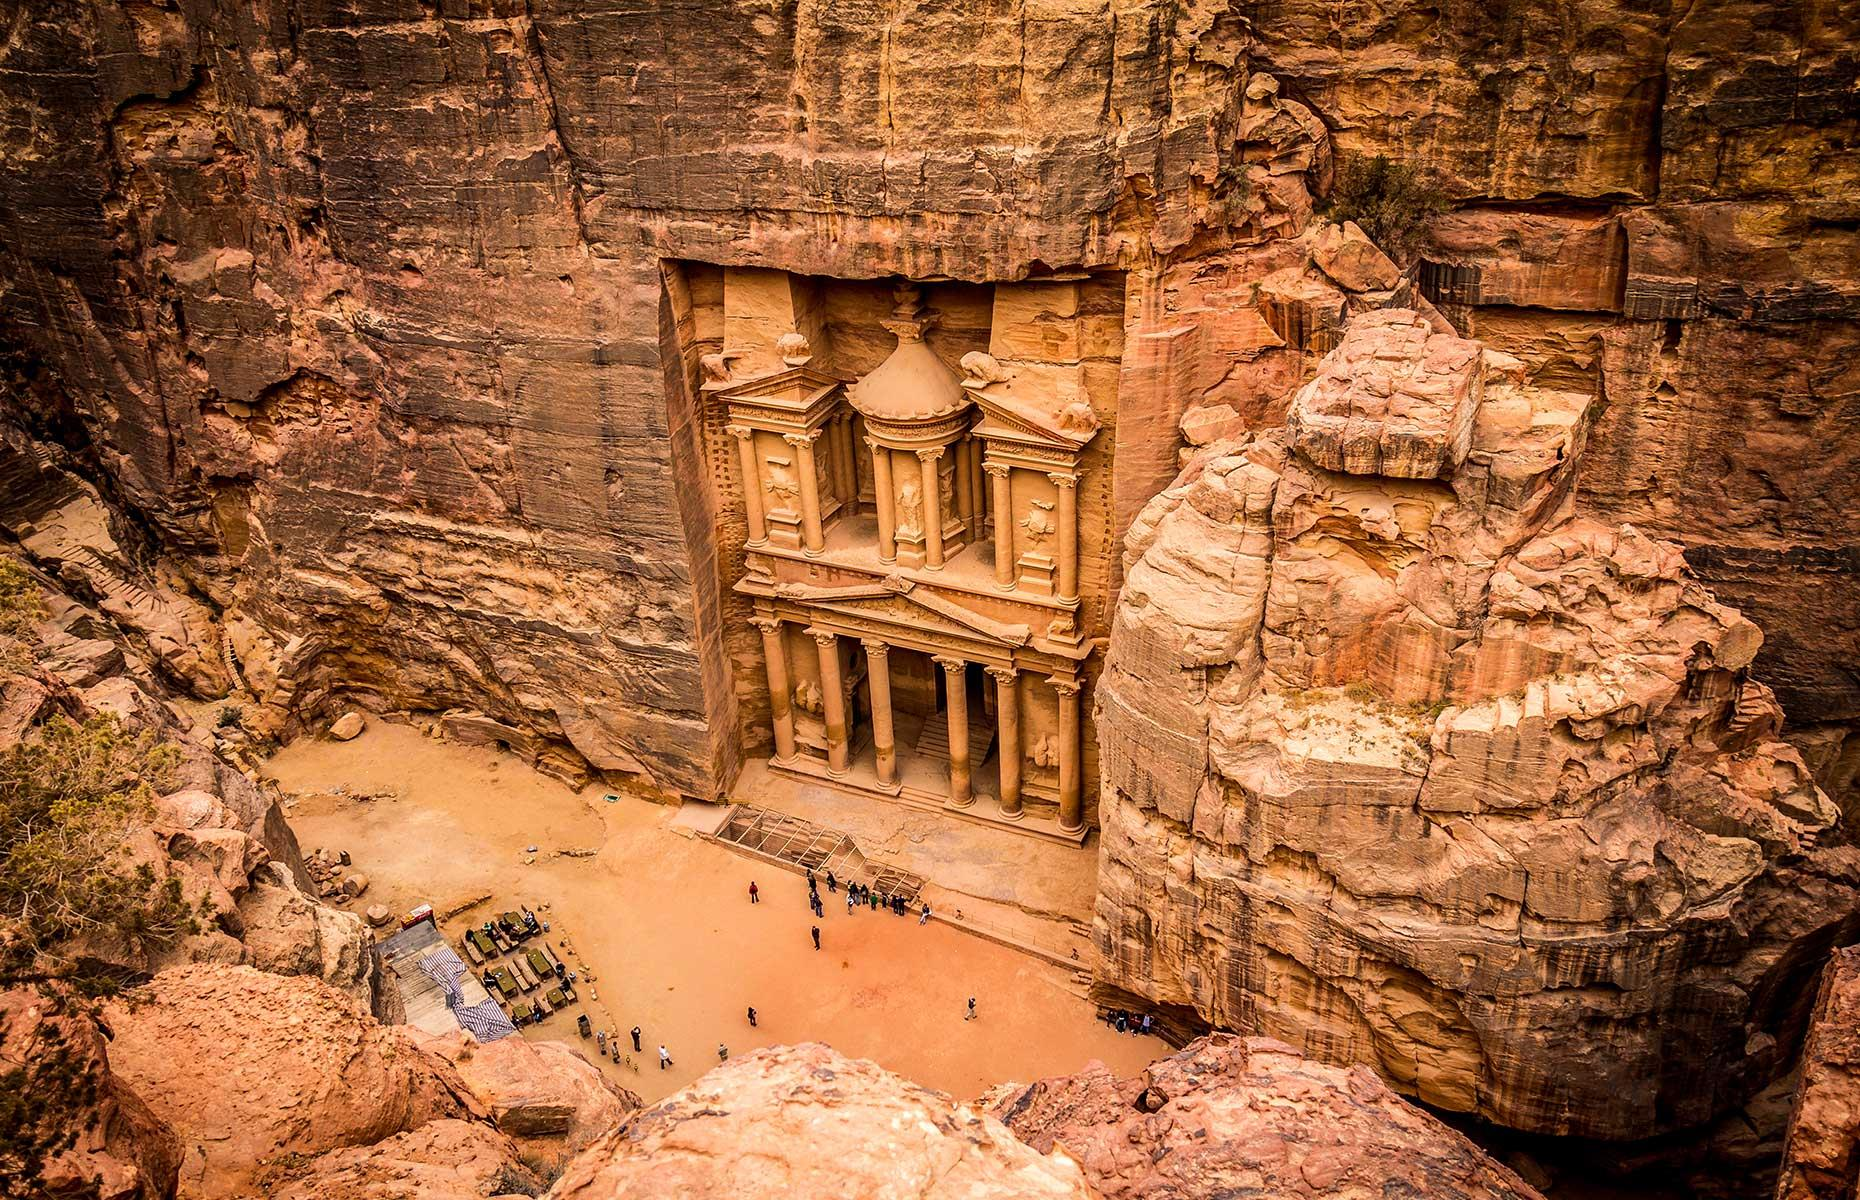 Slide 27 of 30: Known as the Rose City, Petra in southern Jordan was carved into the pink sandstone cliff faces of desert canyons by the Nabataeans in the 1st century BC. The entrance to the city, flanked by 262-foot high (80m) cliffs, opens up onto the Al Khazna or Treasury (pictured). This 131-foot high (40m) building decorated with Corinthian columns and freezes, was probably built in the 1st century BC.